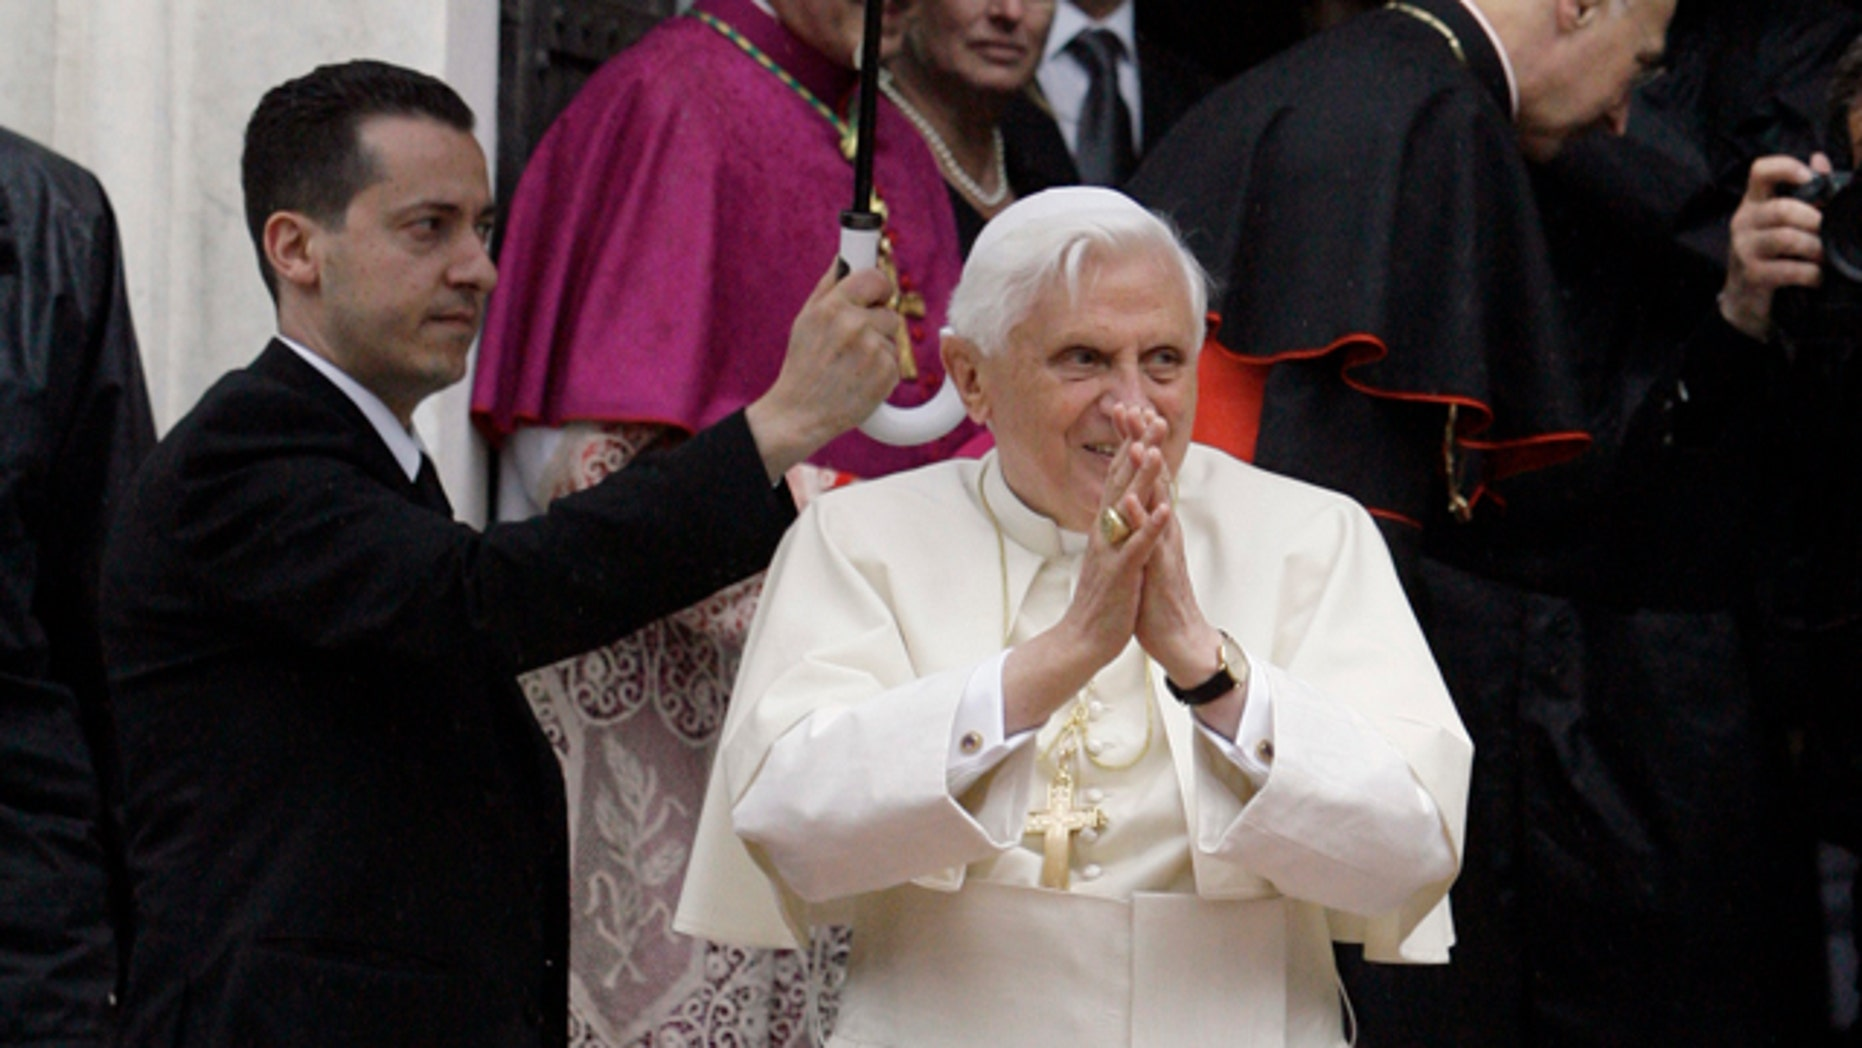 Pope Benedict XVI, shown here in 2008 photo, was the target of a terror plot, according to Italian authorities.